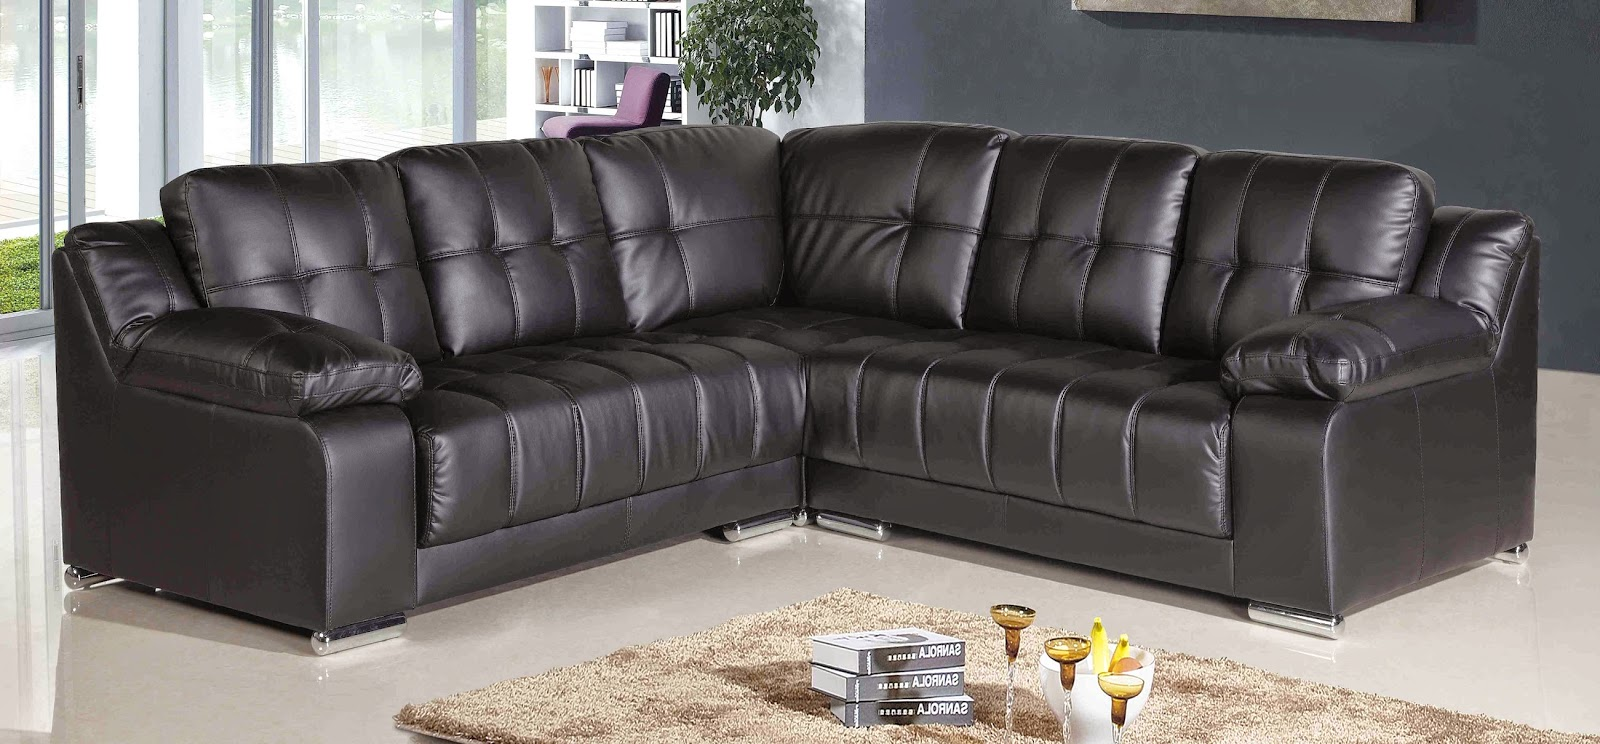 Which sofa is better to choose, corner or normal 38